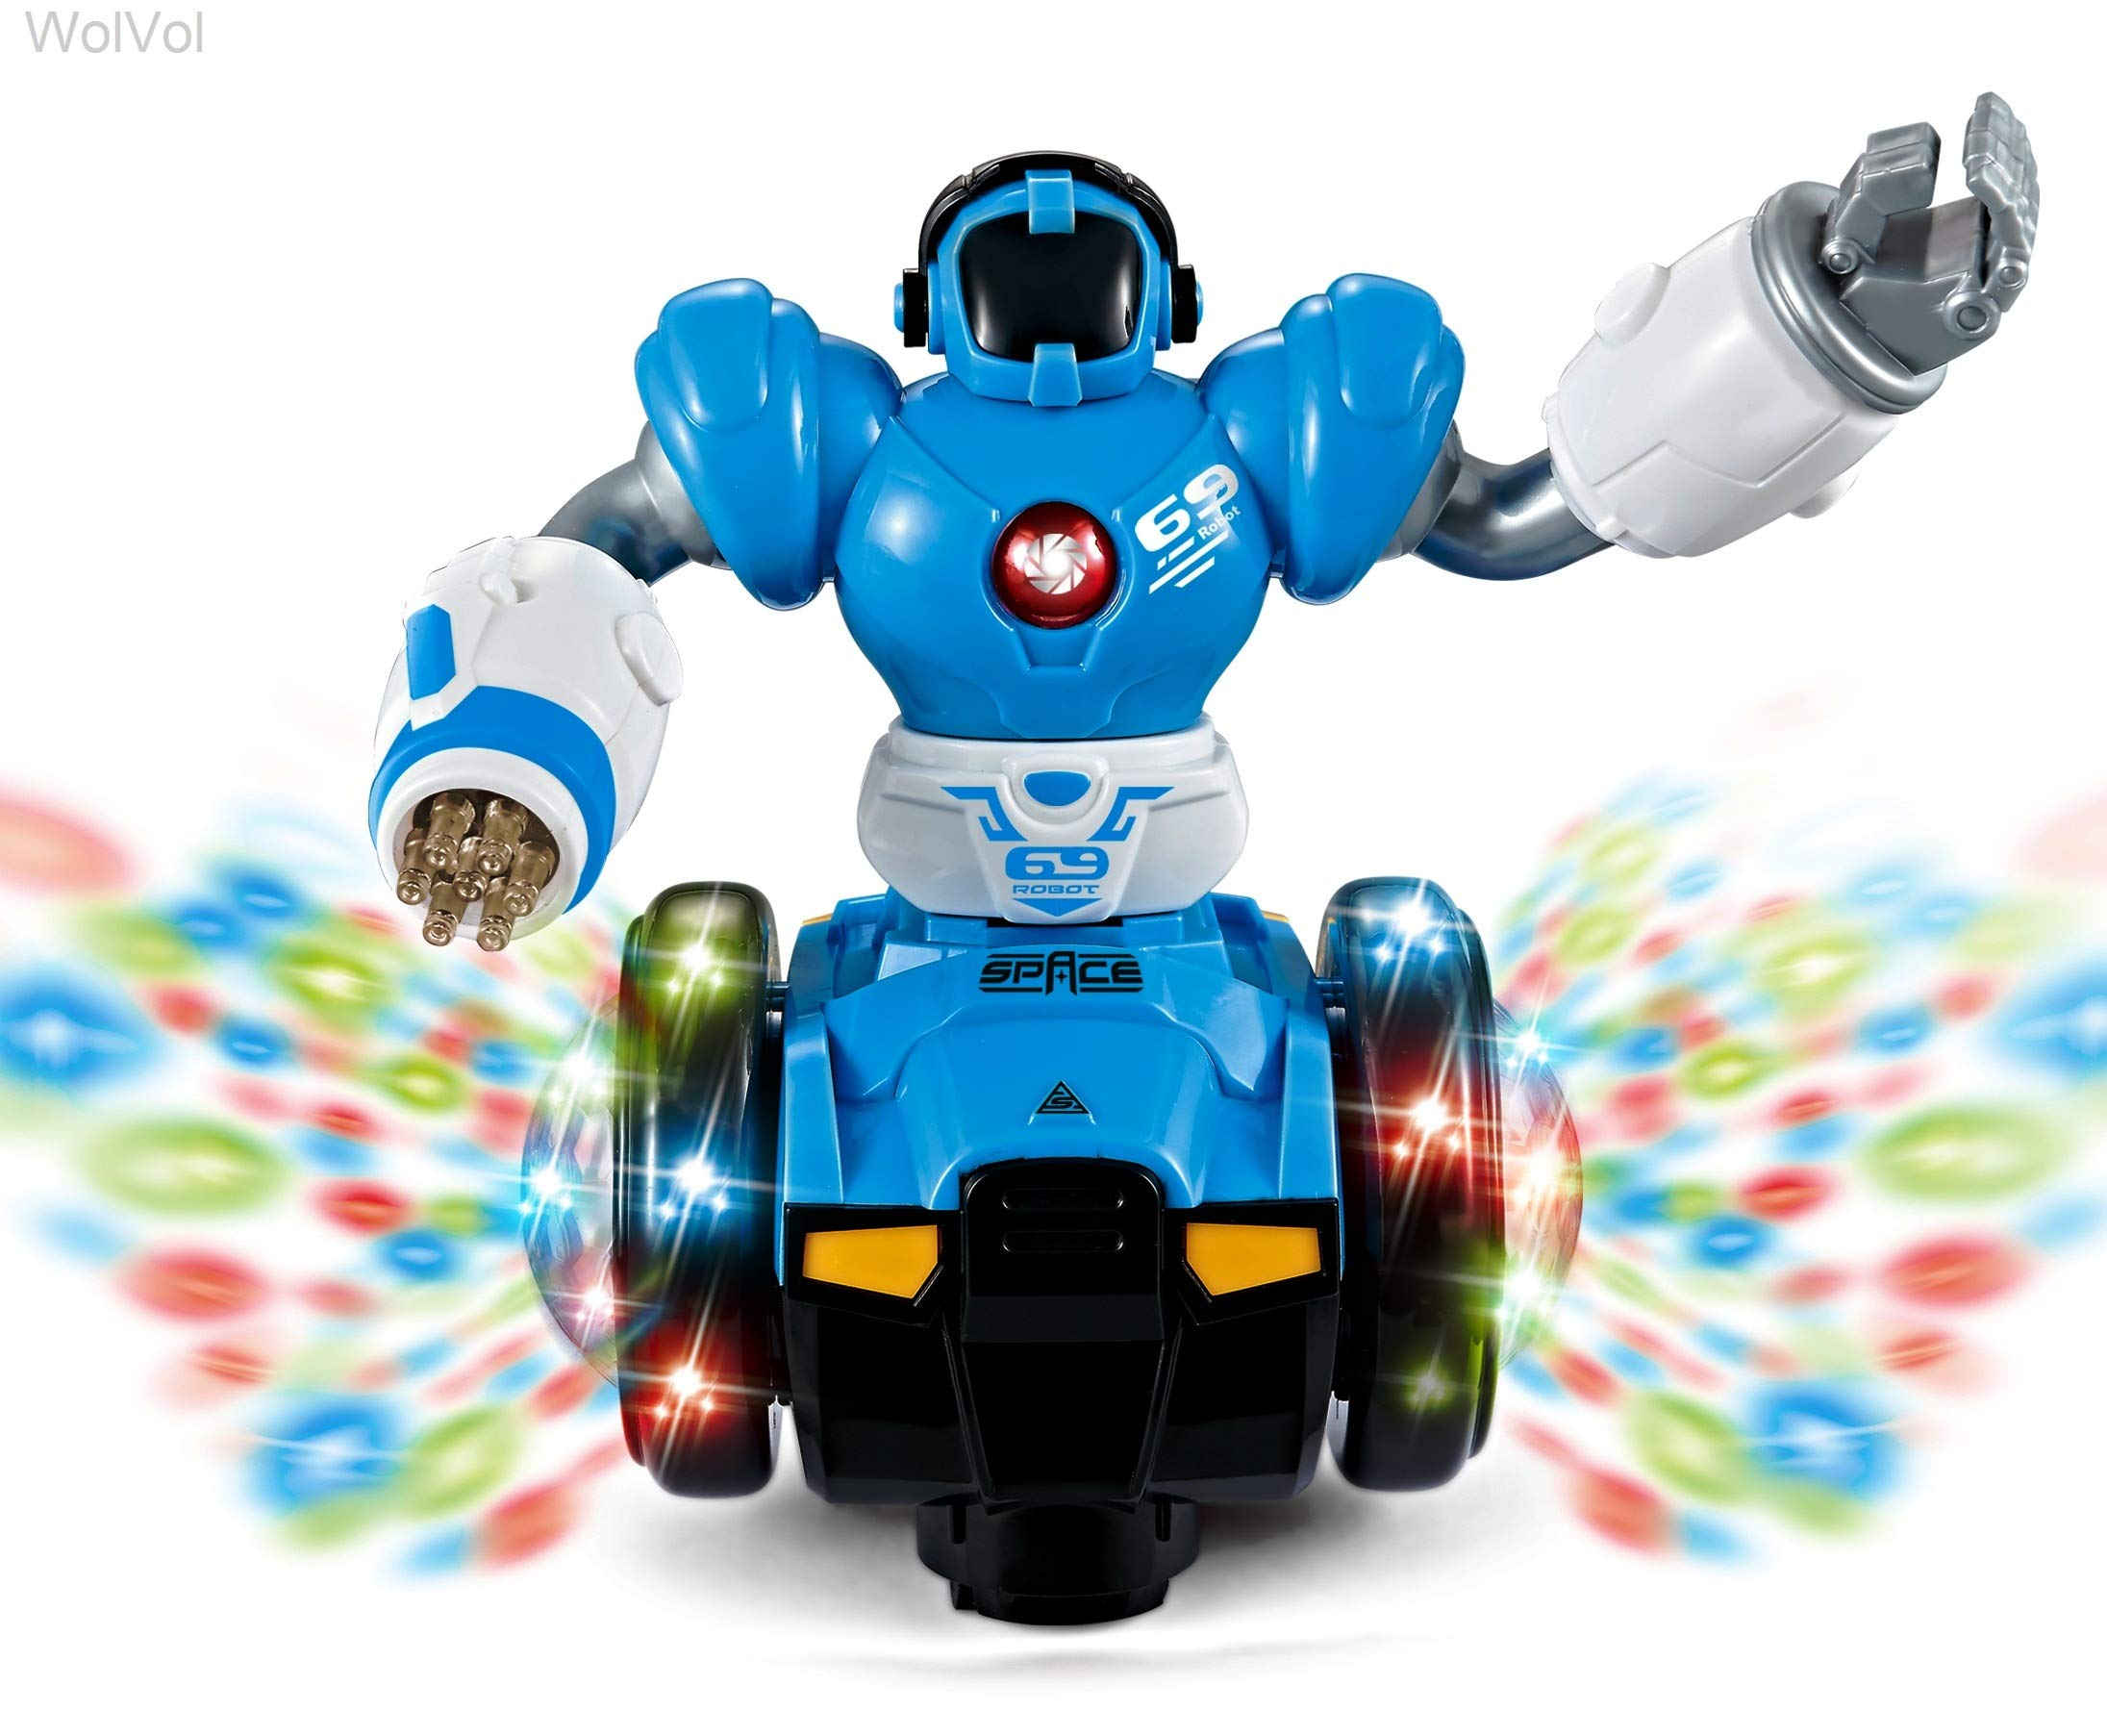 WolVol Bump and Go Robot Toy - Realistic Action with Interactive Sound & Bright Lights - Perfect Gift for Any Occasion for Kids Boys & Girls - wiihuu